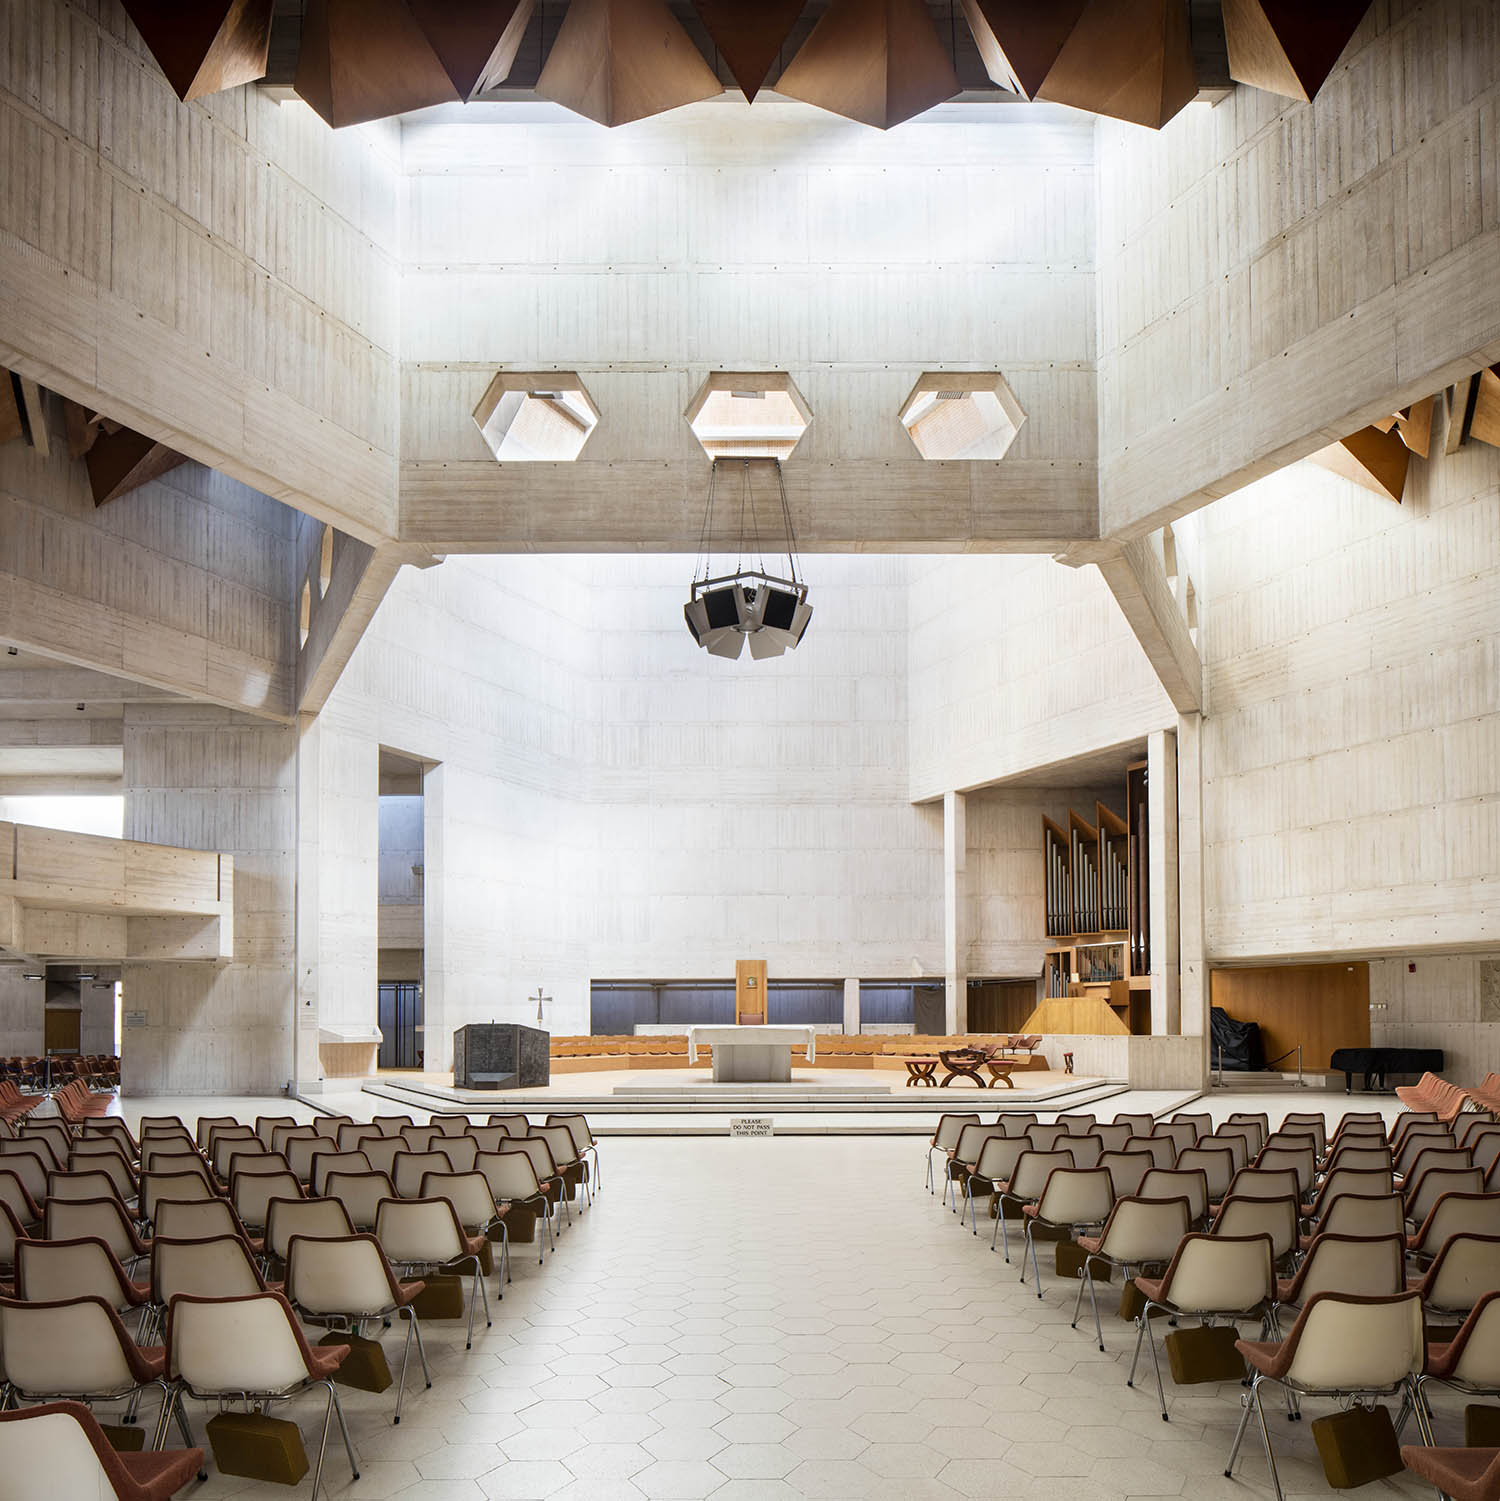 CLIFTON CATHEDRAL / SACRED SPACES